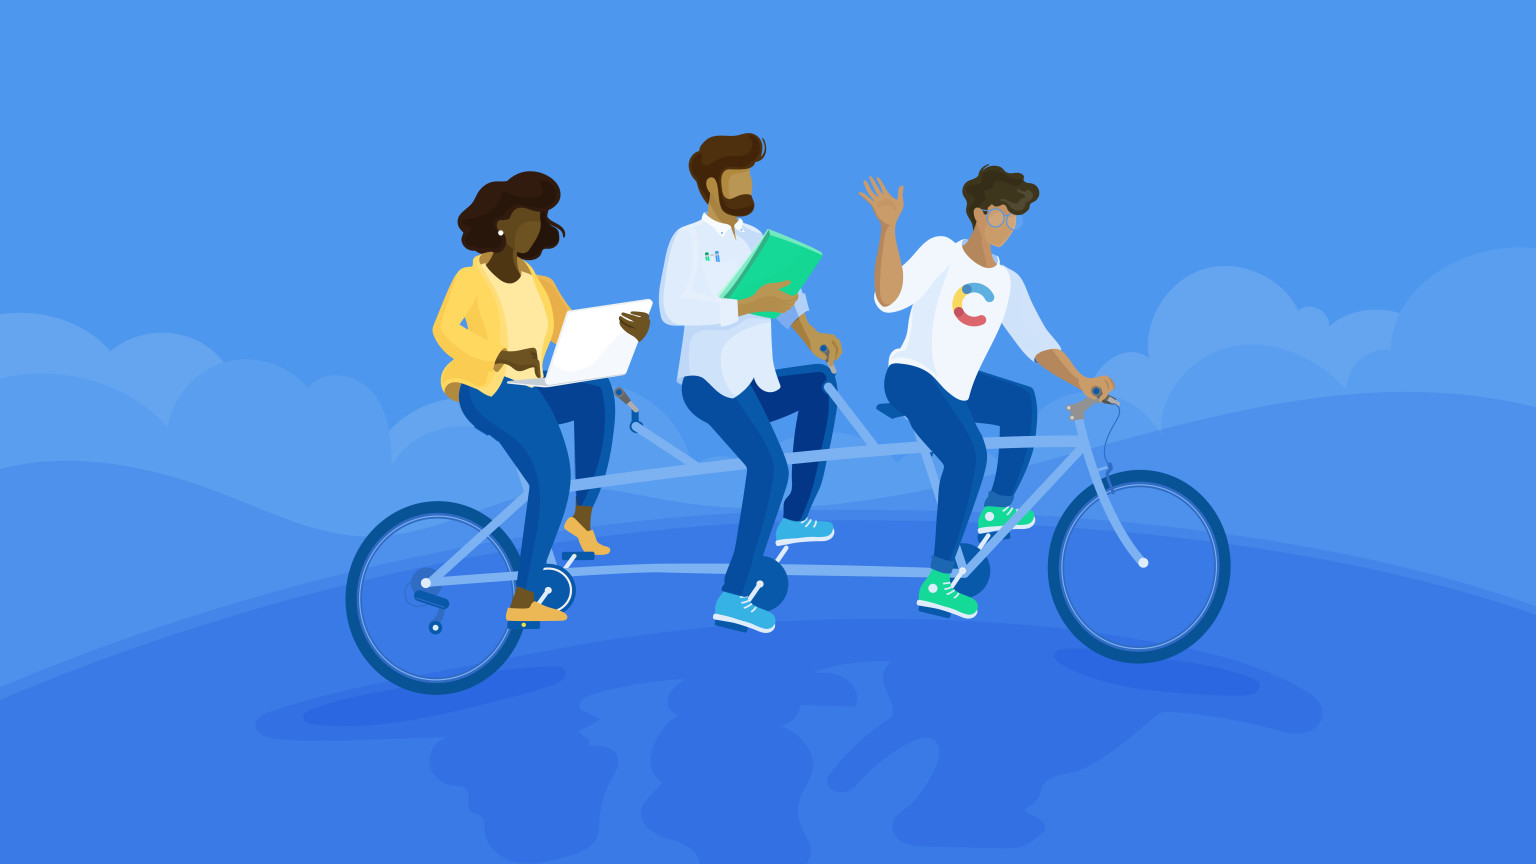 An illustration of three individuals riding a bicycle with three seats.